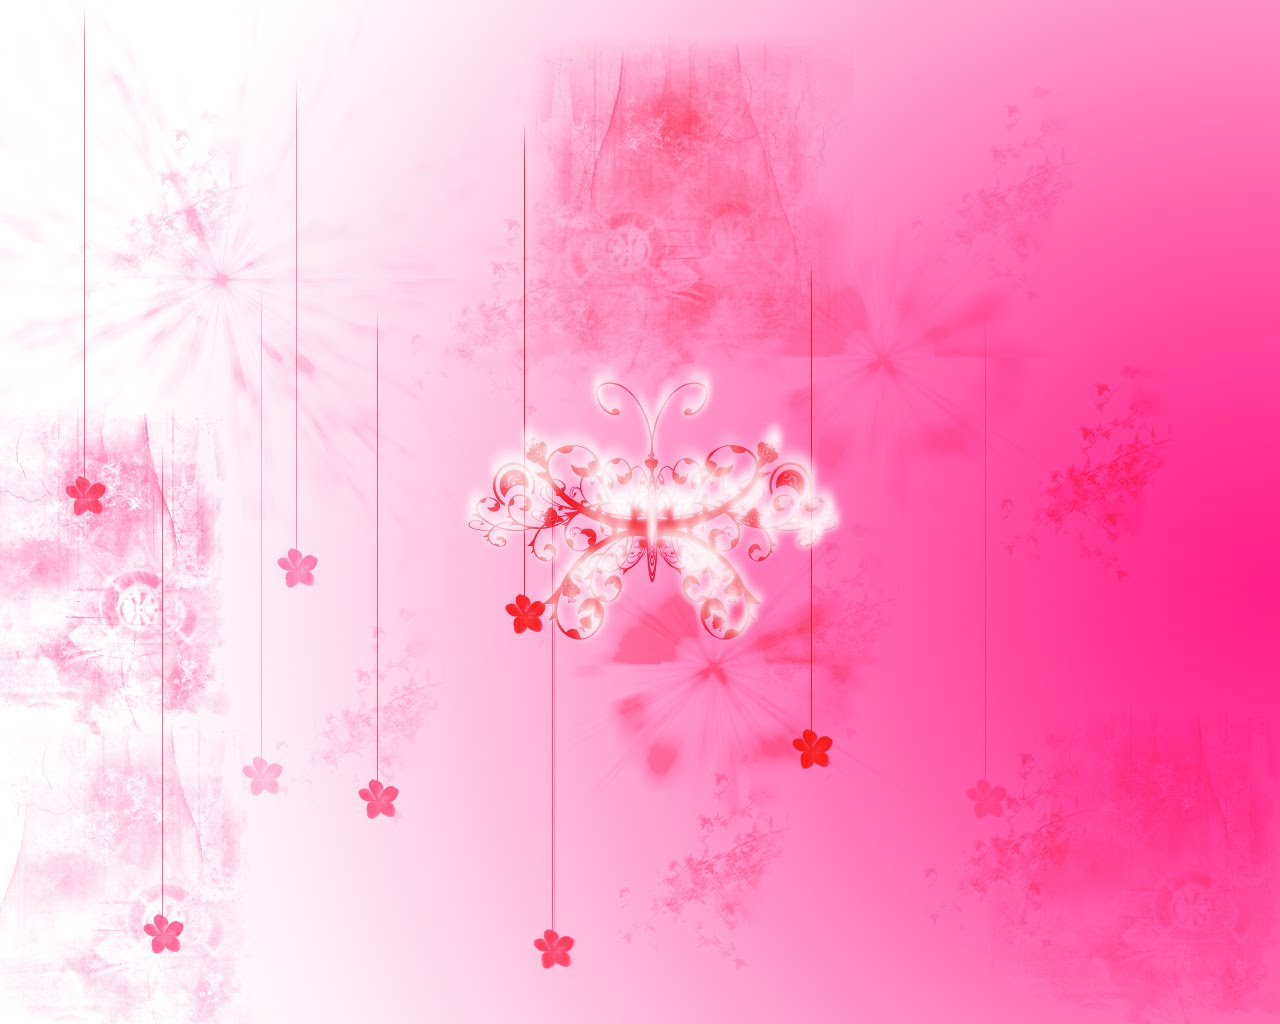 Alayx WAllpaper: Pink HD Wallpapers Beautiful Girly Backgrounds